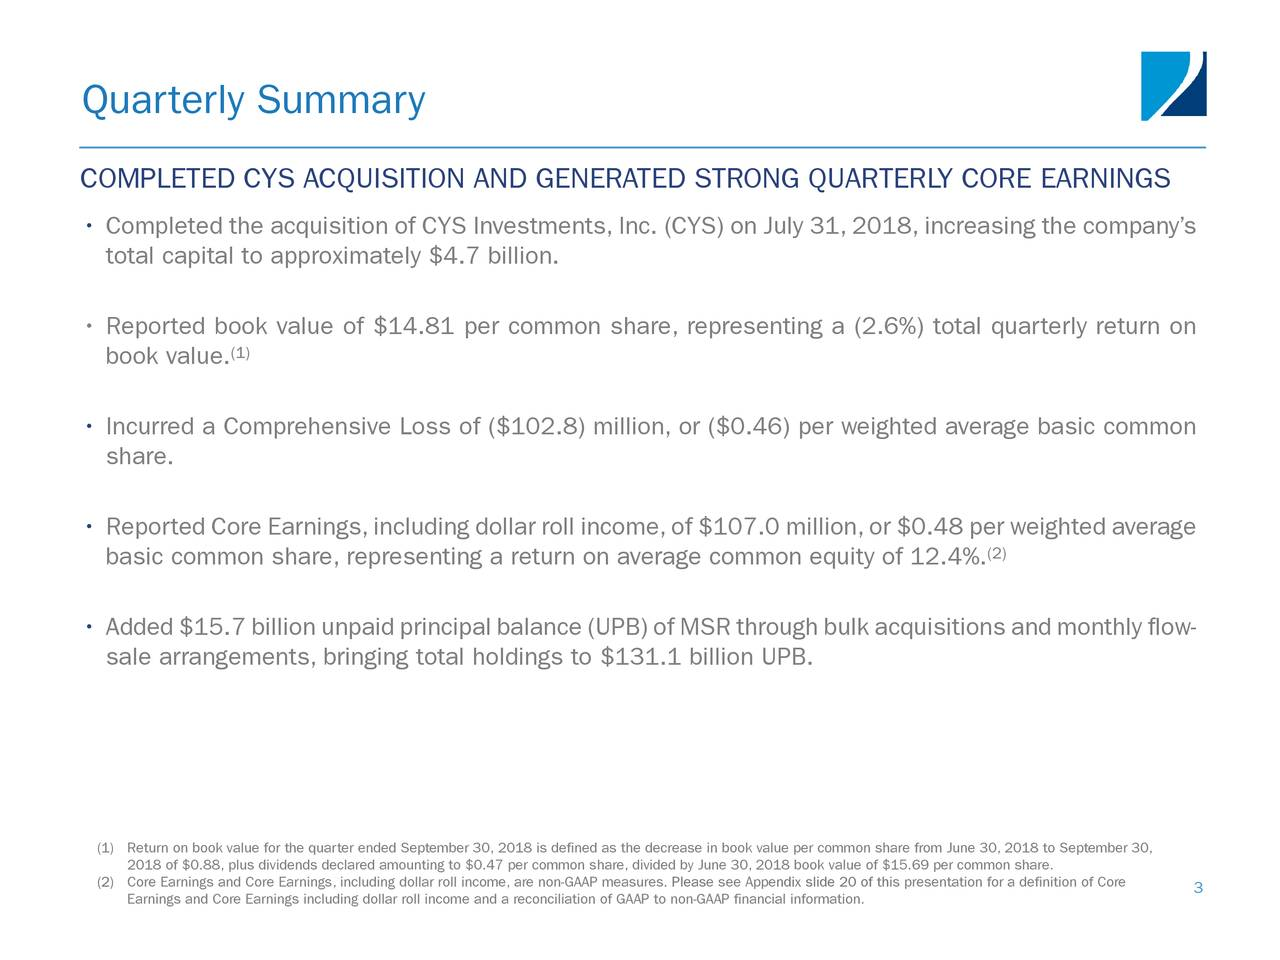 COMPLETED CYS ACQUISITION AND GENERATED STRONG QUARTERLY CORE EARNINGS • Completed the acquisition of CYS Investments, Inc. (CYS) on July 31, 2018, increasing the company's total capital to approximately $4.7 billion. • Reported book value of $14.81 per common share, representing a (2.6%) total quarterly return on book value. (1) • Incurred a Comprehensive Loss of ($102.8) million, or ($0.46) per weighted average basic common share. • Reported Core Earnings,including dollar roll income,of $107.0 million,or $0.48 per weighted average basic common share, representing a return on average common equity of 12.4%. (2) • Added $15.7 billion unpaid principal balance (UPB) of MSR through bulk acquisitions and monthly flow- sale arrangements, bringing total holdings to $131.1 billion UPB. (1) Return on book value for the quarter ended September 30, 2018 is defined as the decrease in book value per common share from June 30, 2018 to September 30, 2018 of $0.88, plus dividends declared amounting to $0.47 per common share, divided by June 30, 2018 book value of $15.69 per common share. (2)Earnings and Core Earnings including dollar roll income and a reconciliation of GAAP to non-GAAP financial information.this presentation for a definition of Core